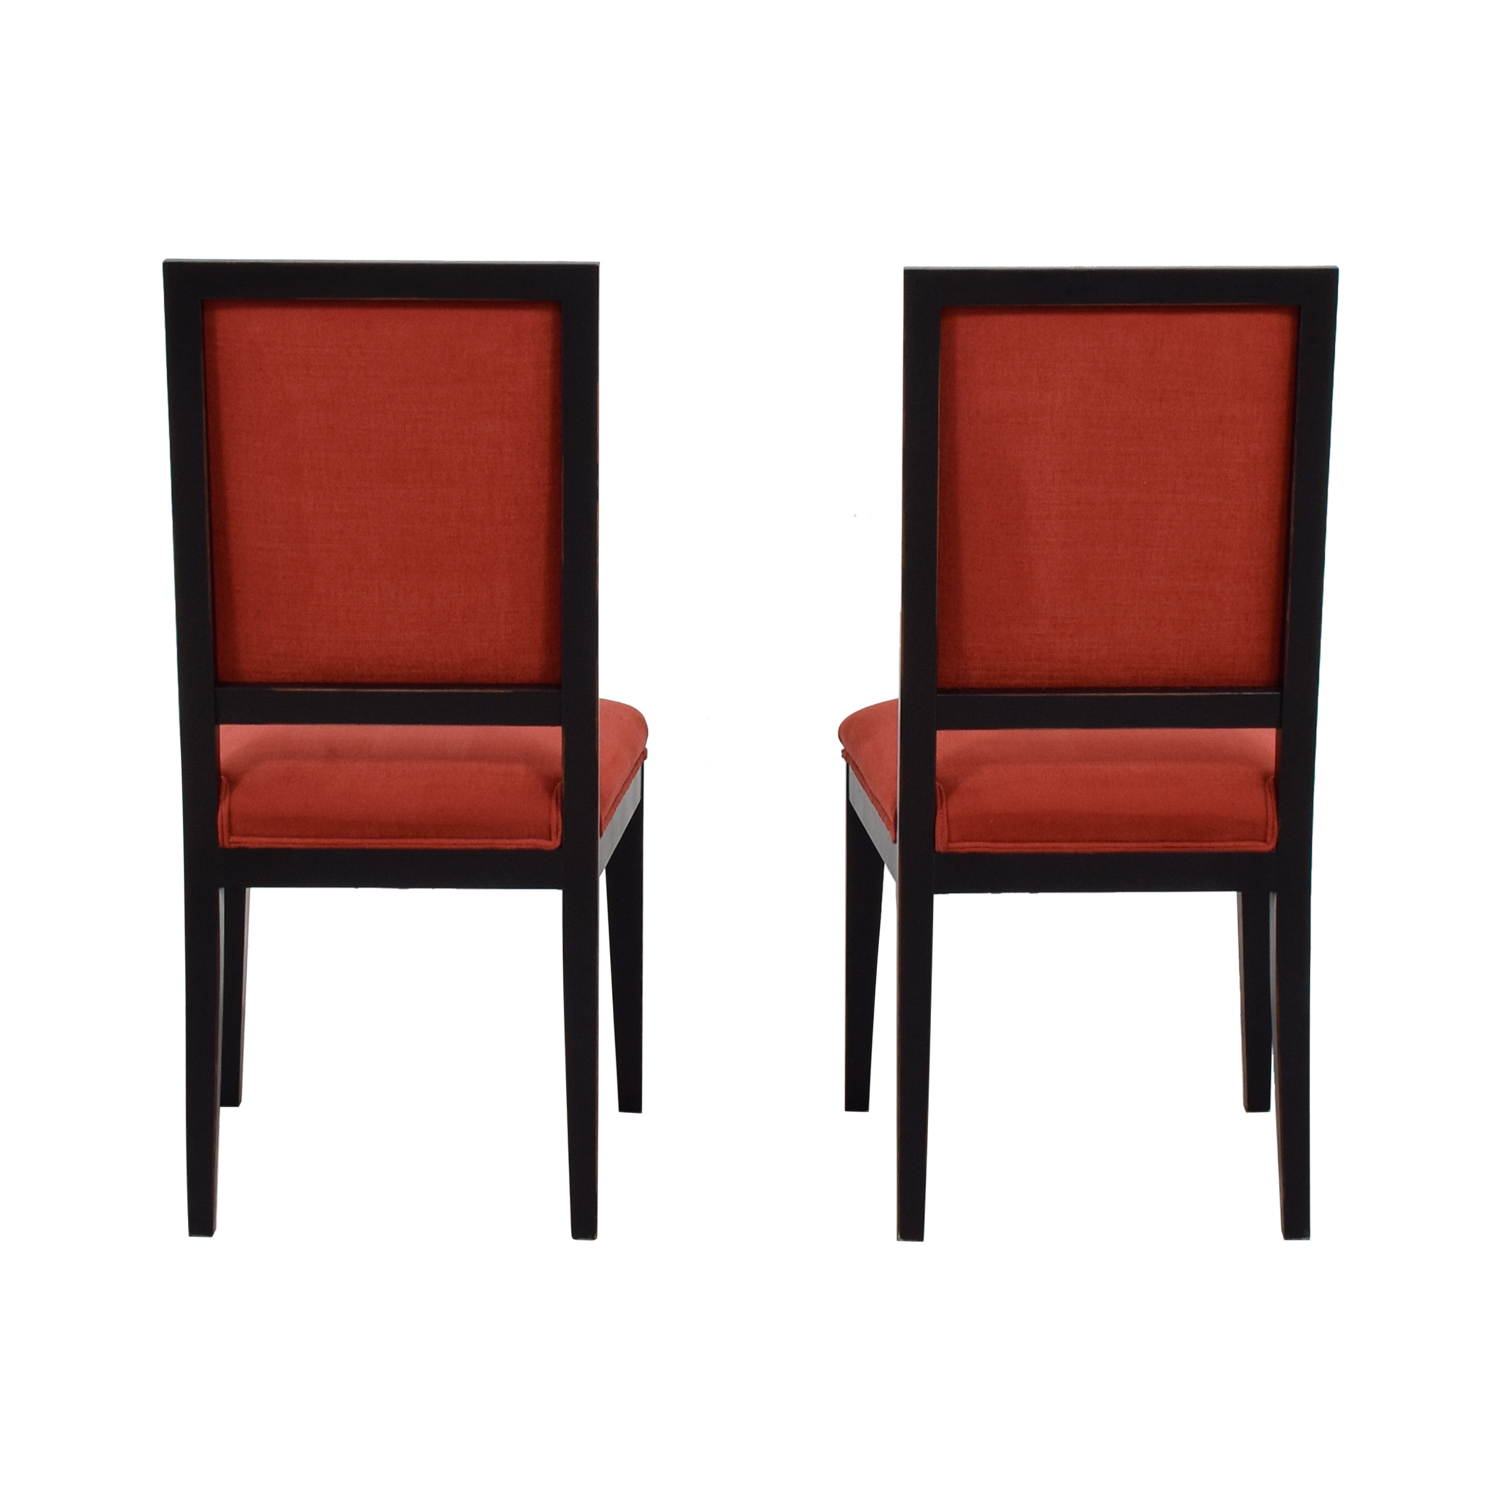 Buying and Design Buying and Design Red Upholstered Dining Chairs discount